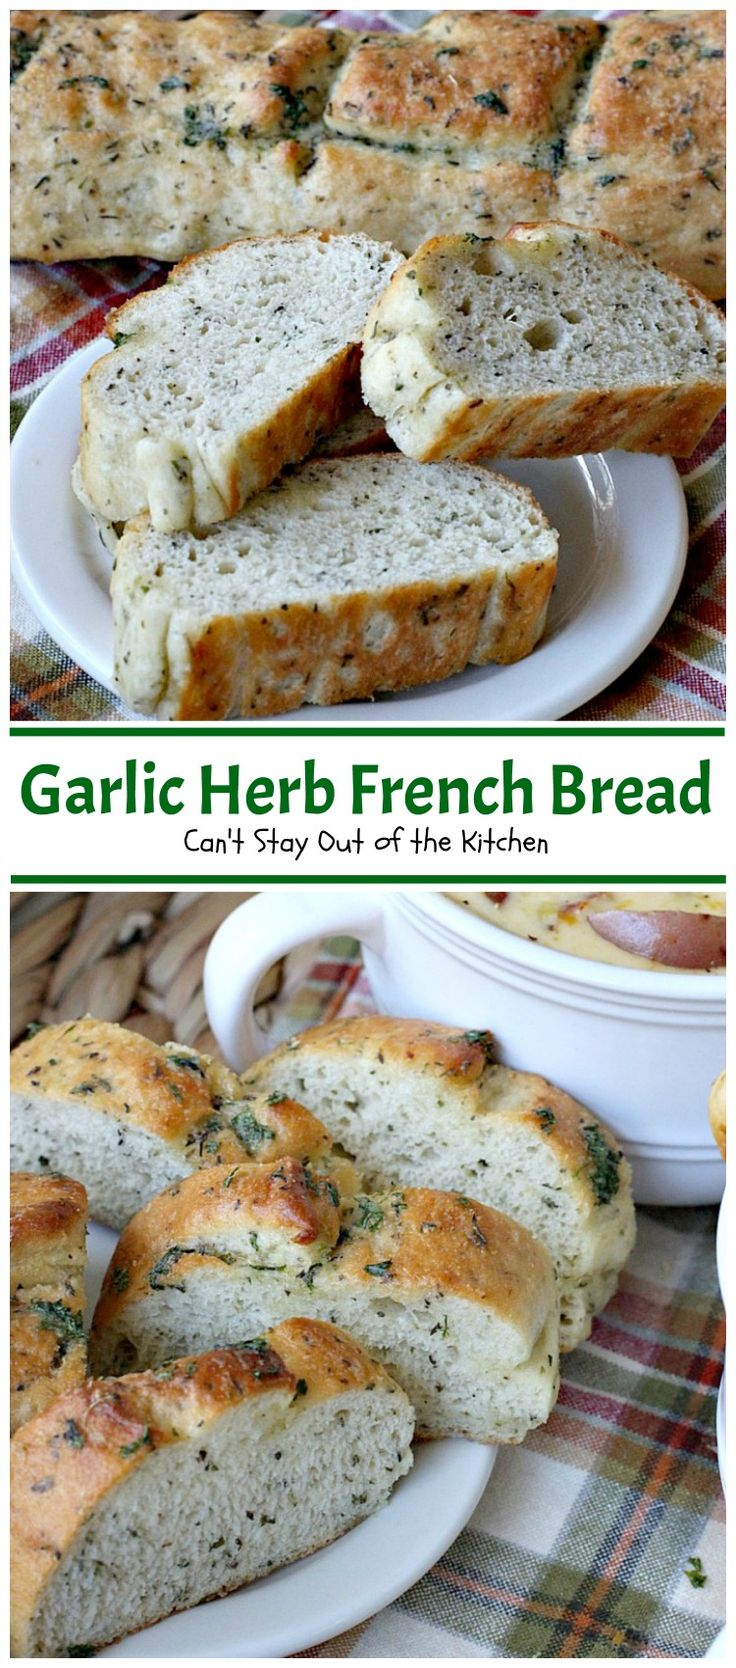 Bread Lovers Are Going To Rave Over This Delicious Recipe Garlic Herb French Bread Starts With My Easy French Bread Recipe But Instead Of Being Plain